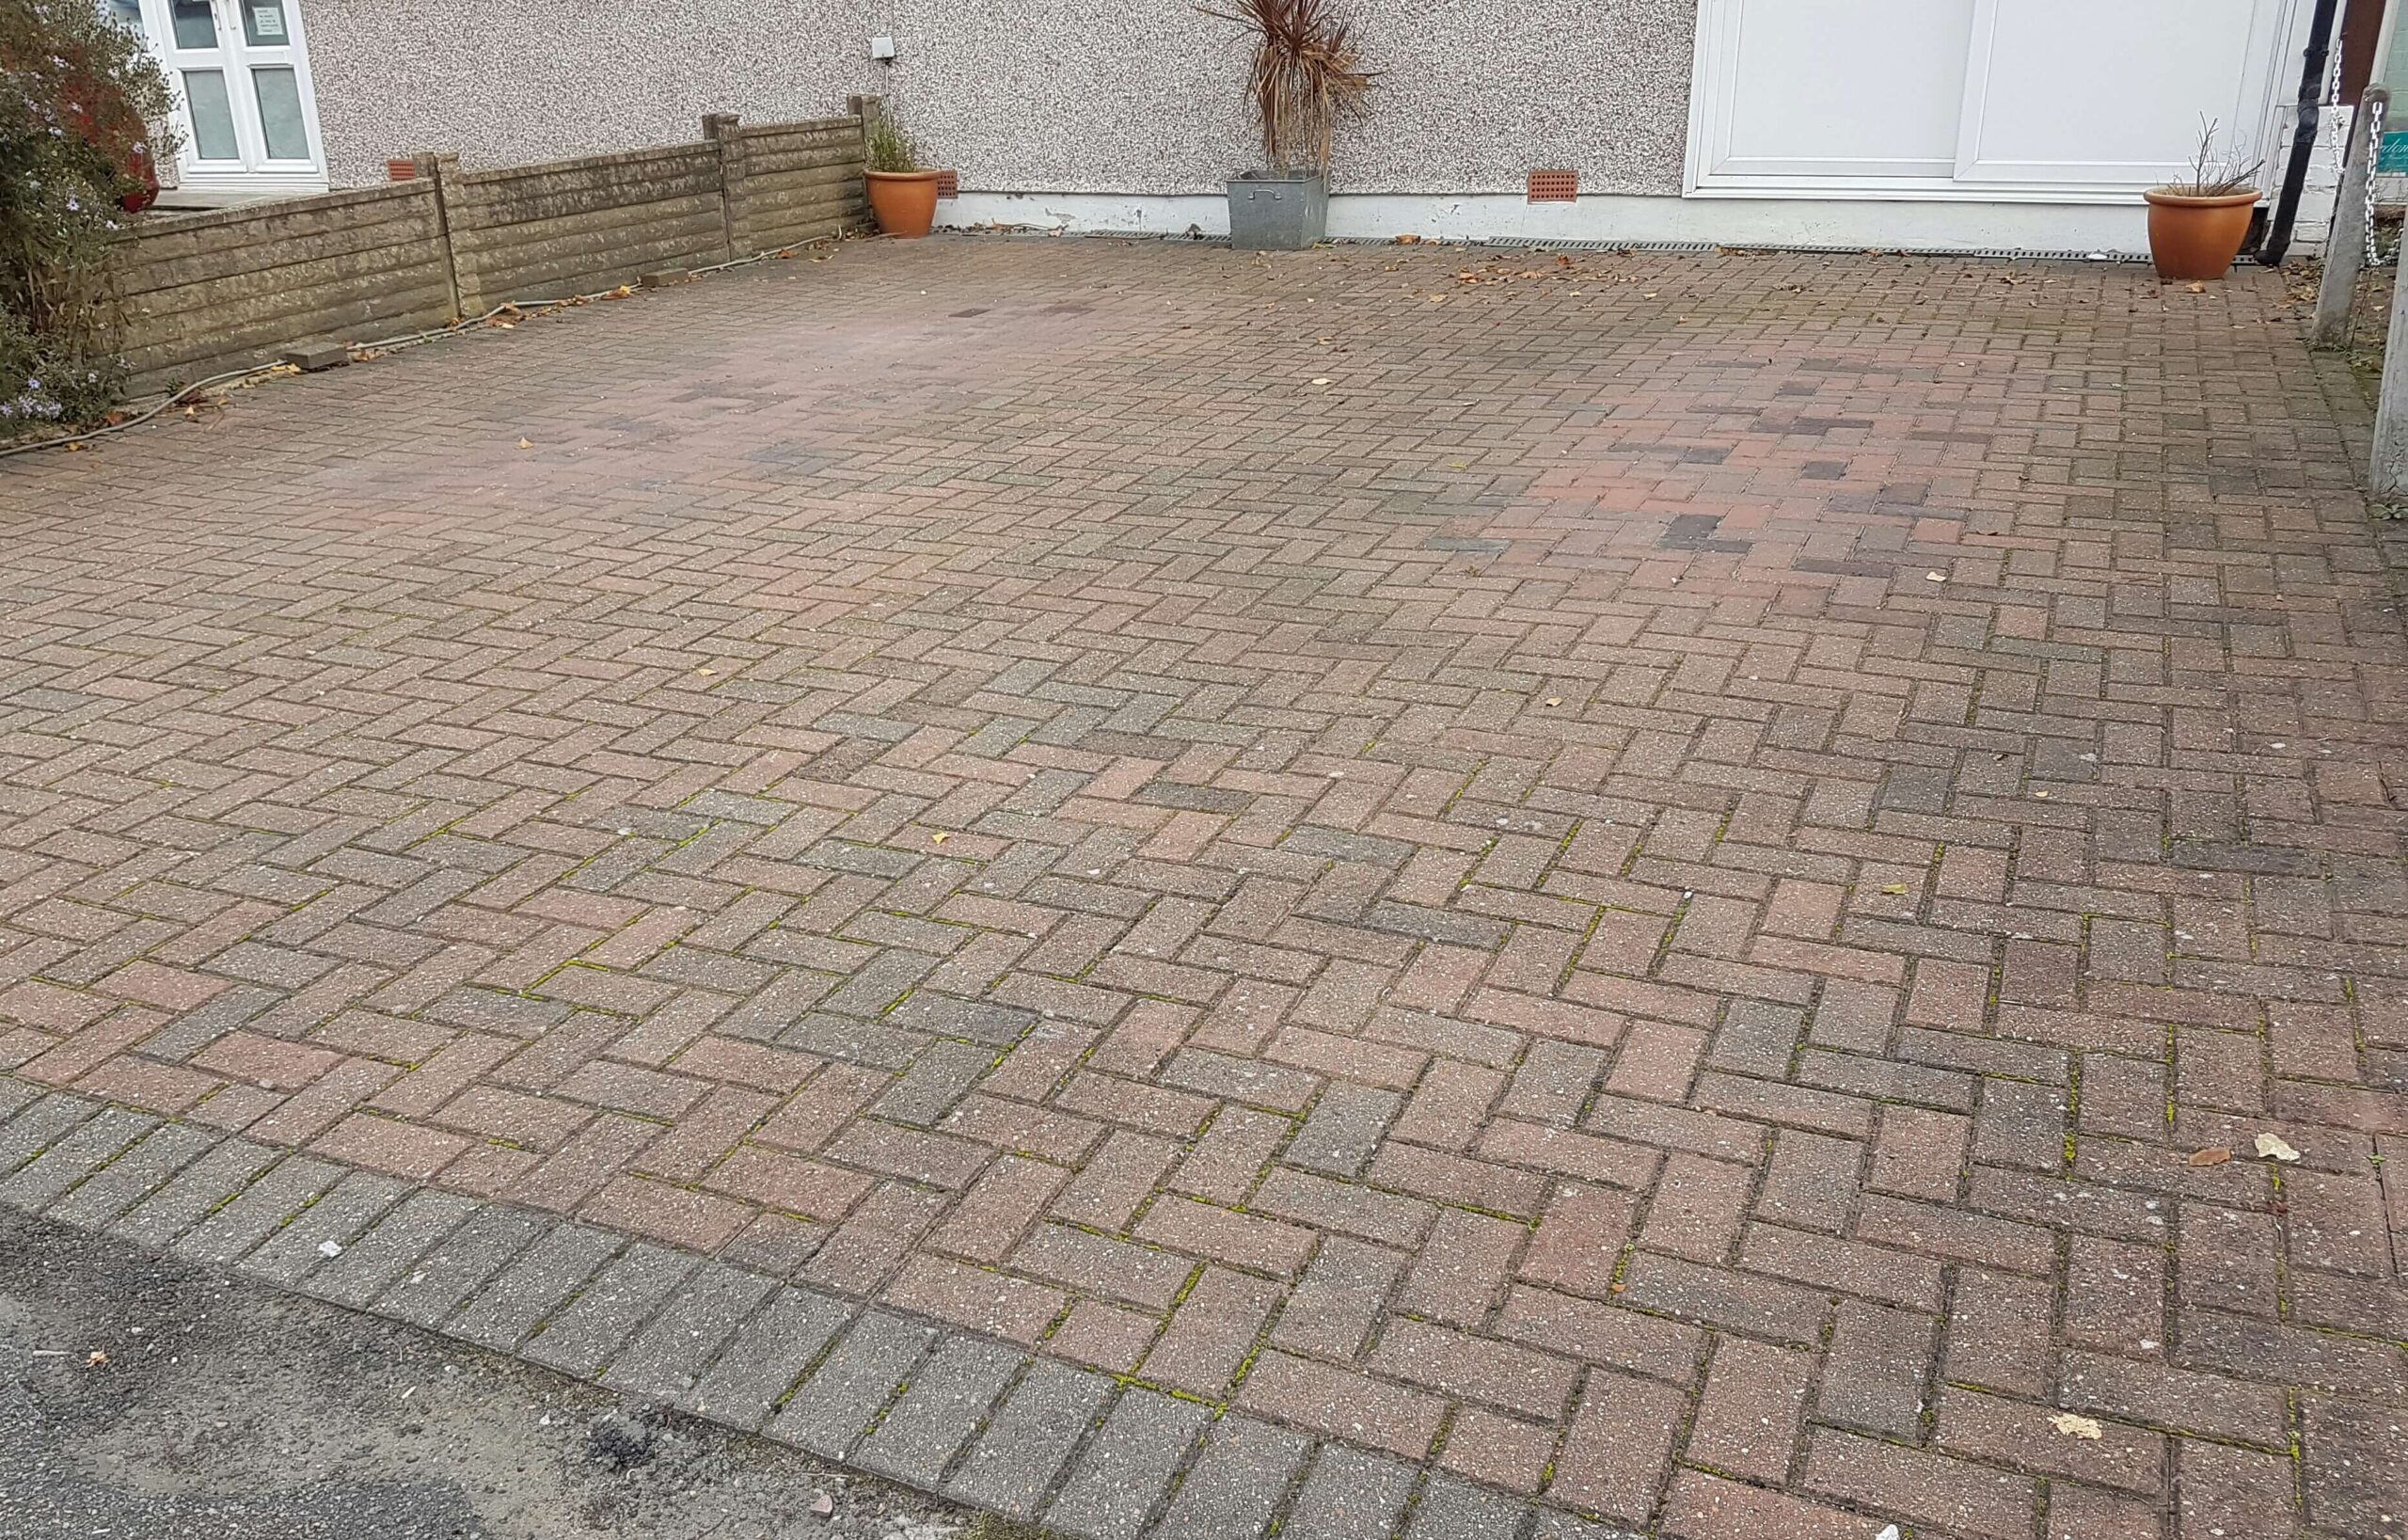 Clean Vehicle Patches On Block Pave Driveway